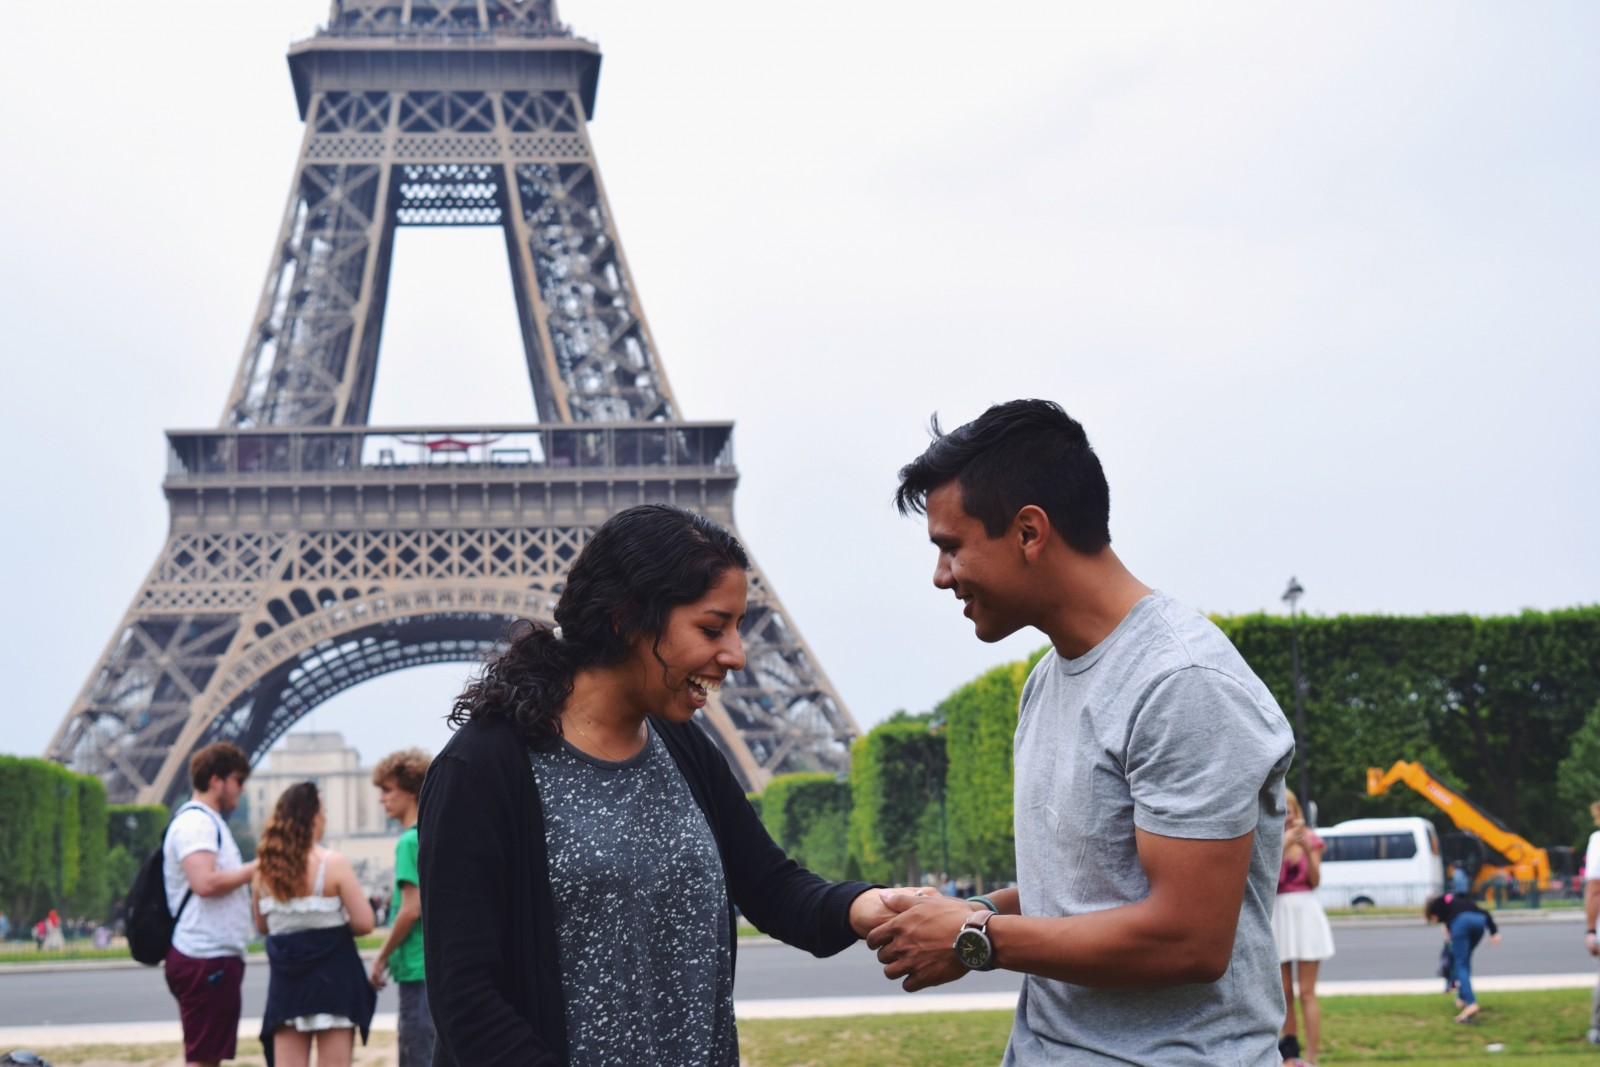 Engaged in the City of Love